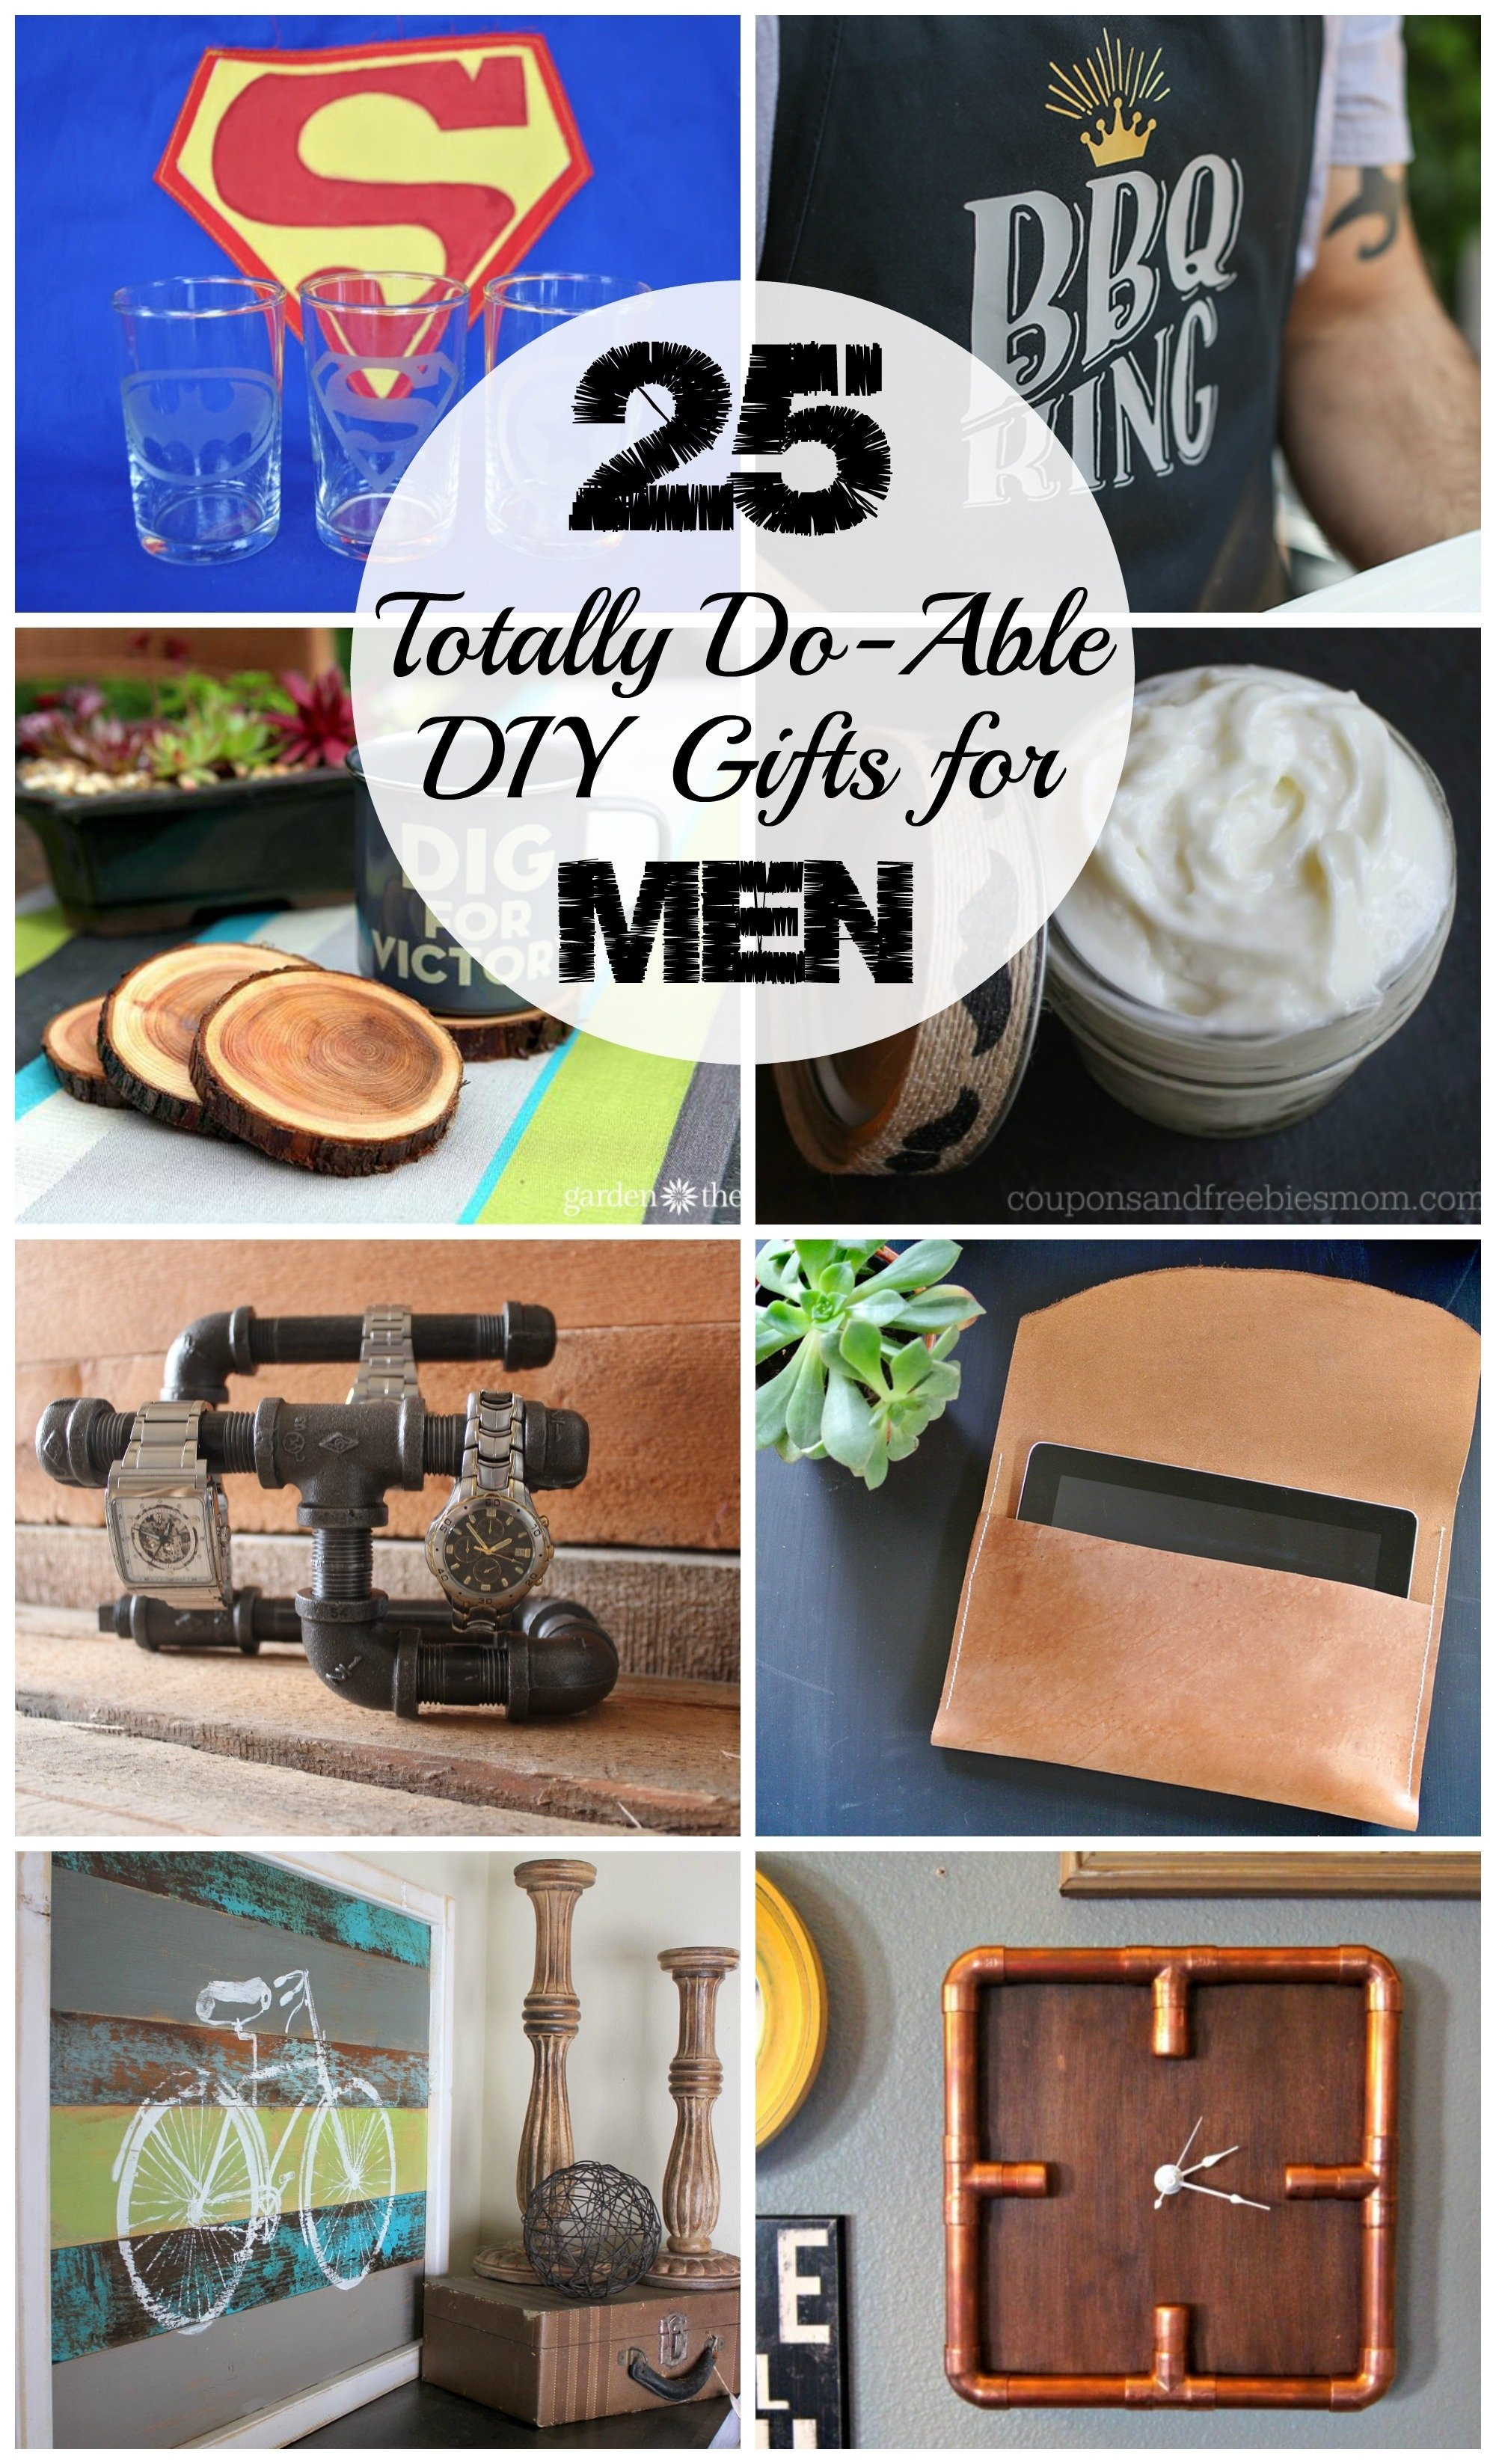 10 Nice Diy Gift Ideas For Him 25 diy gifts for men love create celebrate 2020